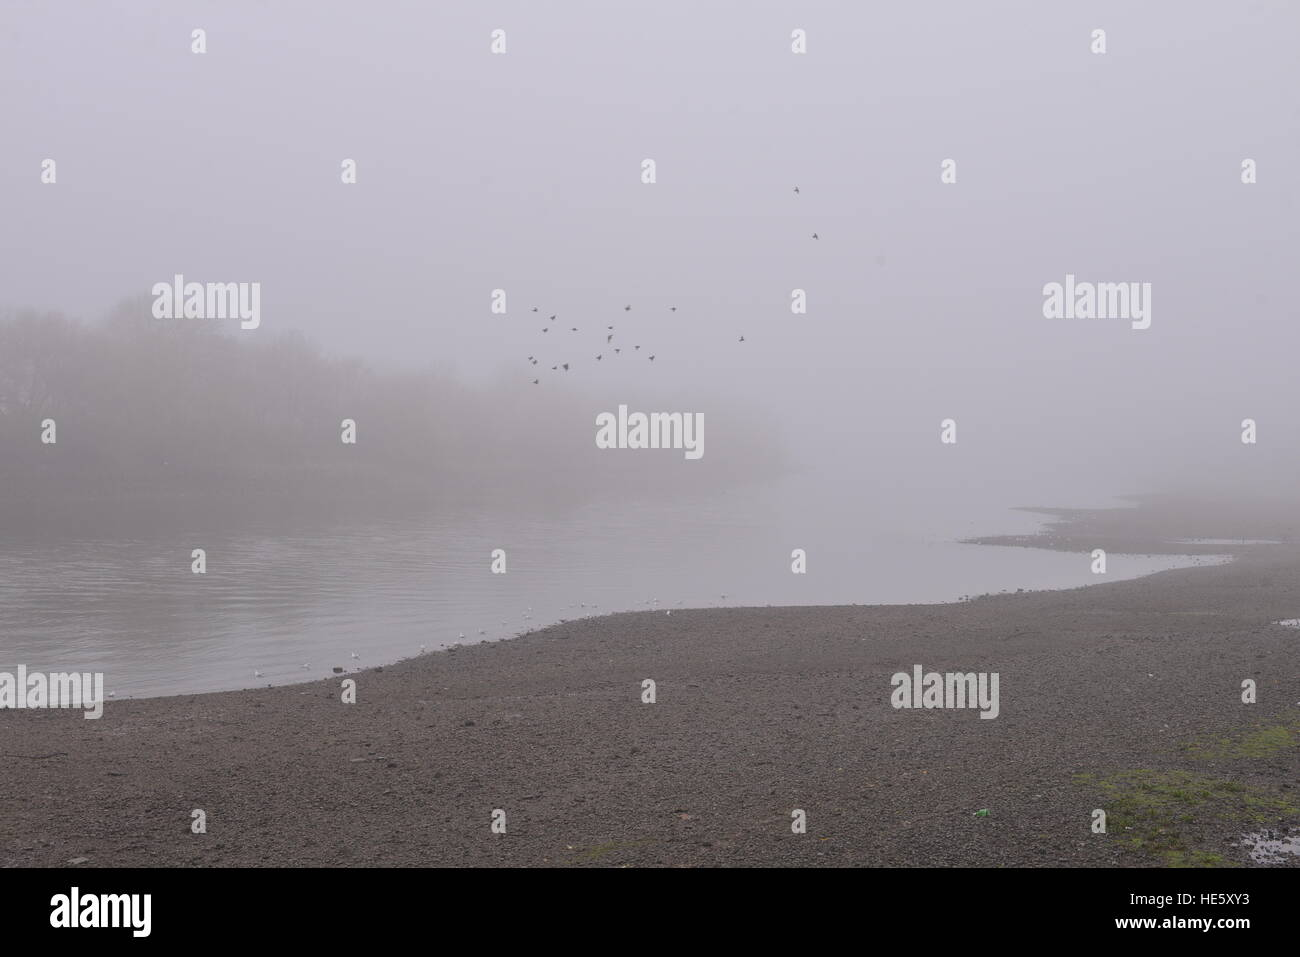 Foggy misty day ducks flying over river Thames, Barnes ©Francisco A. Soeiro/News Alamy - Stock Image